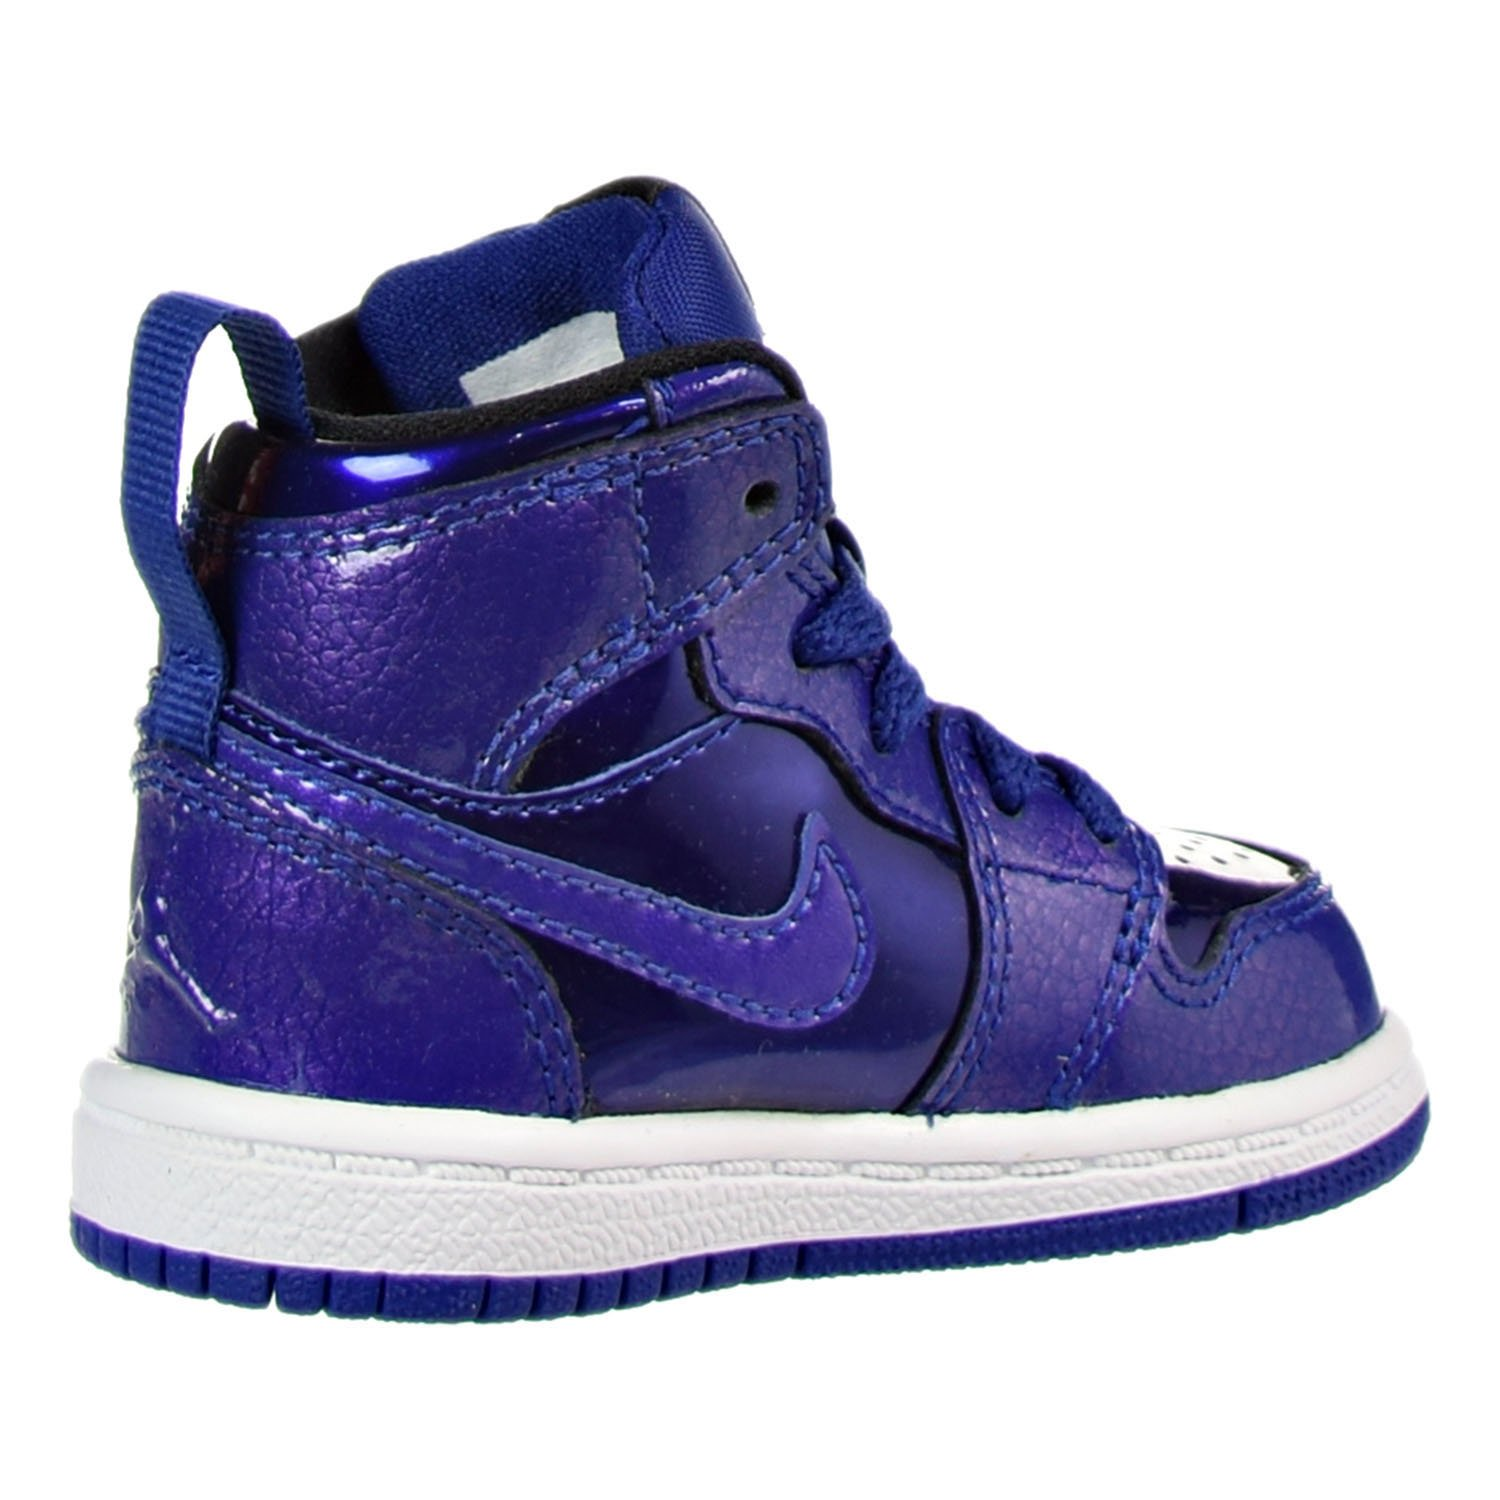 best website 813c2 c0e6b Amazon.com   Jordan 1 Retro Hi Infant High-Top Casual Shoes Blue 3 Medium  (D) Infant   Sneakers